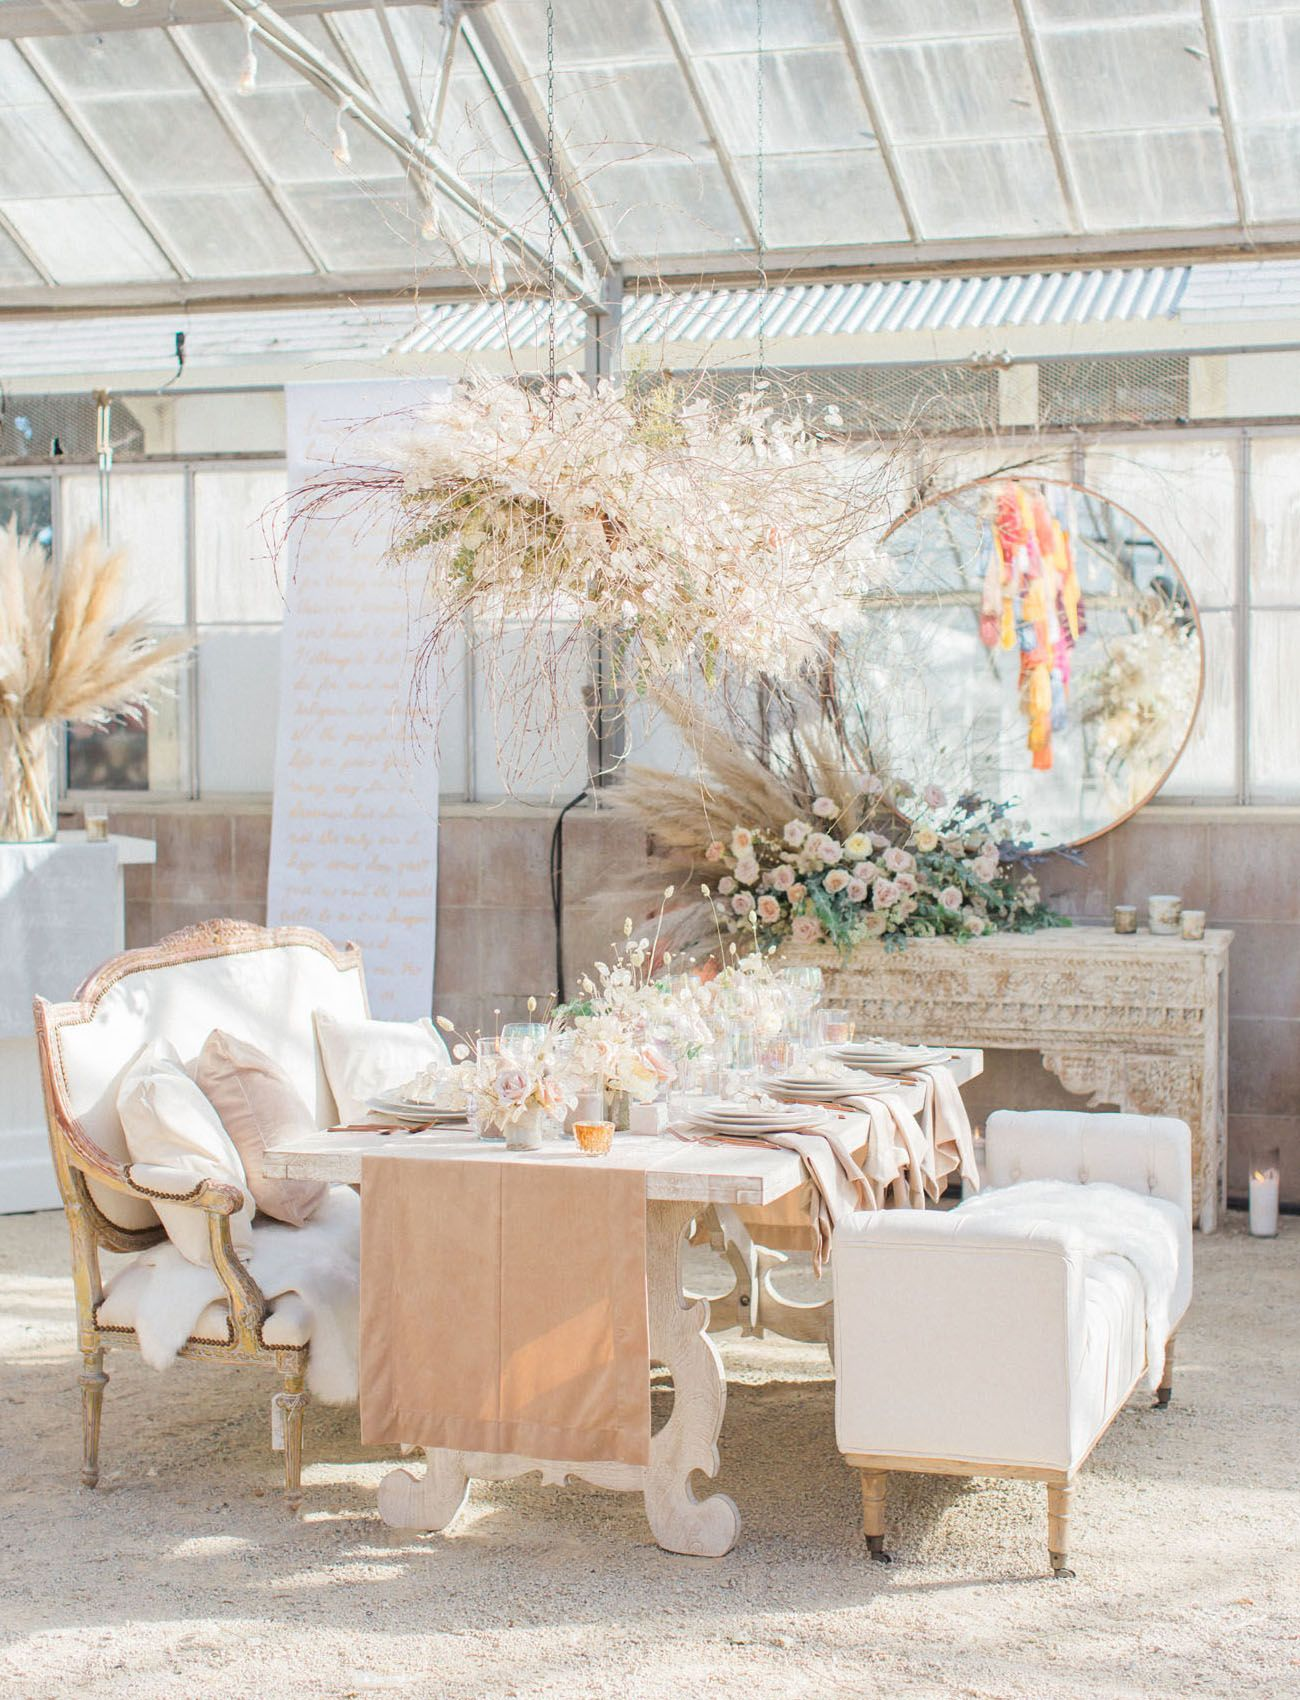 Wedding room decoration ideas 2018  Swanky Seventies  Desert Crushinu Vintage Meets Festival Vibes